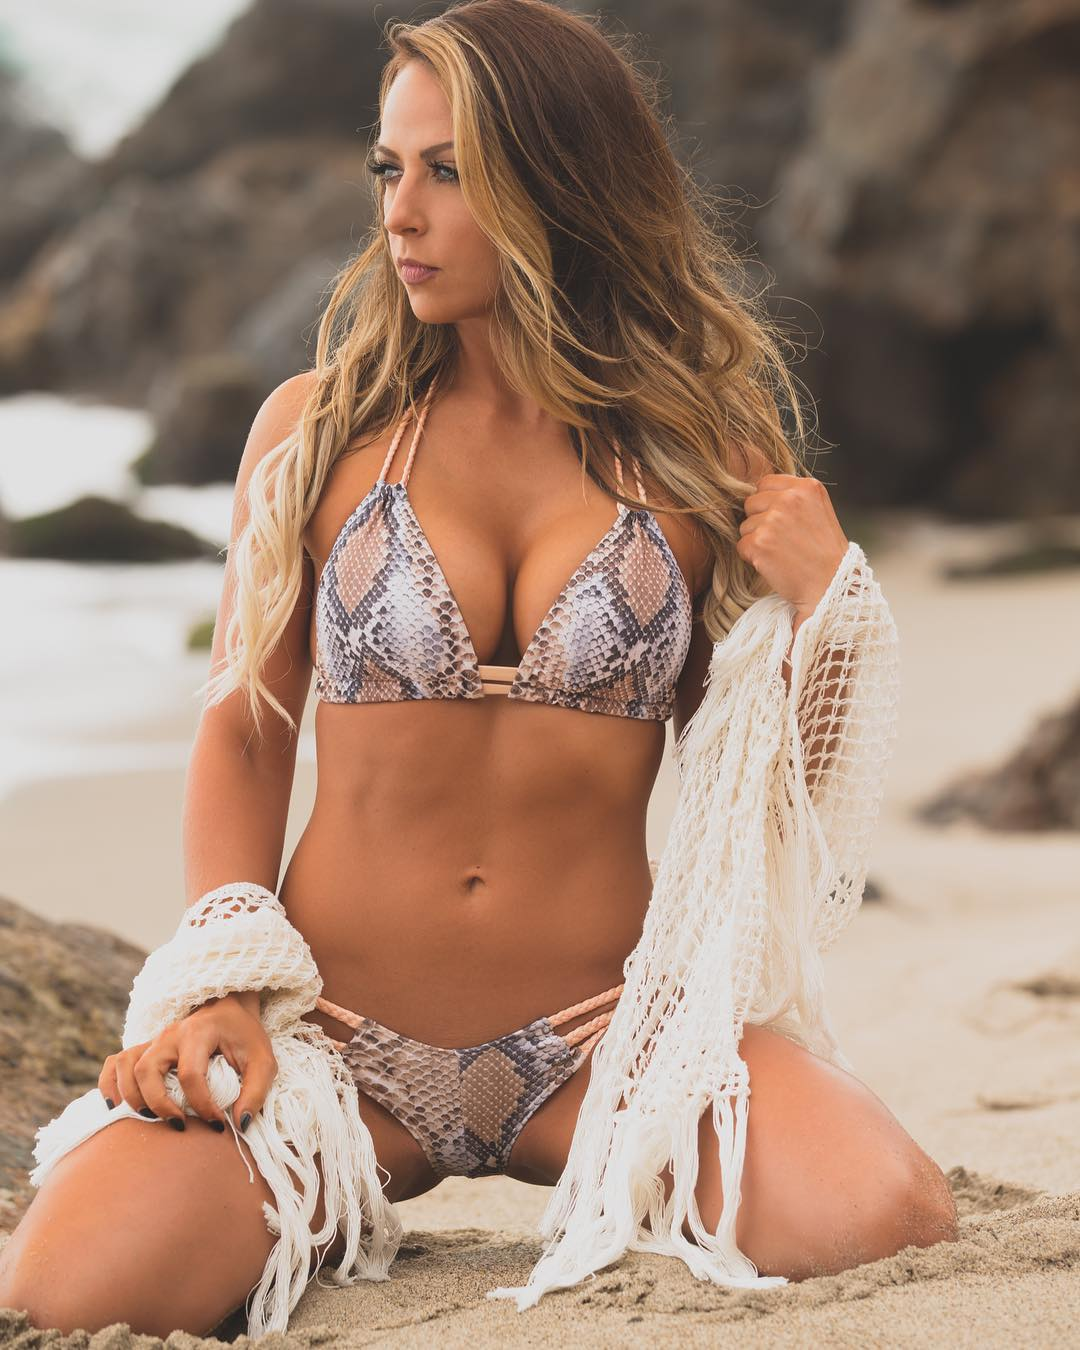 Tenille Dashwood Sexy Boobs Pics